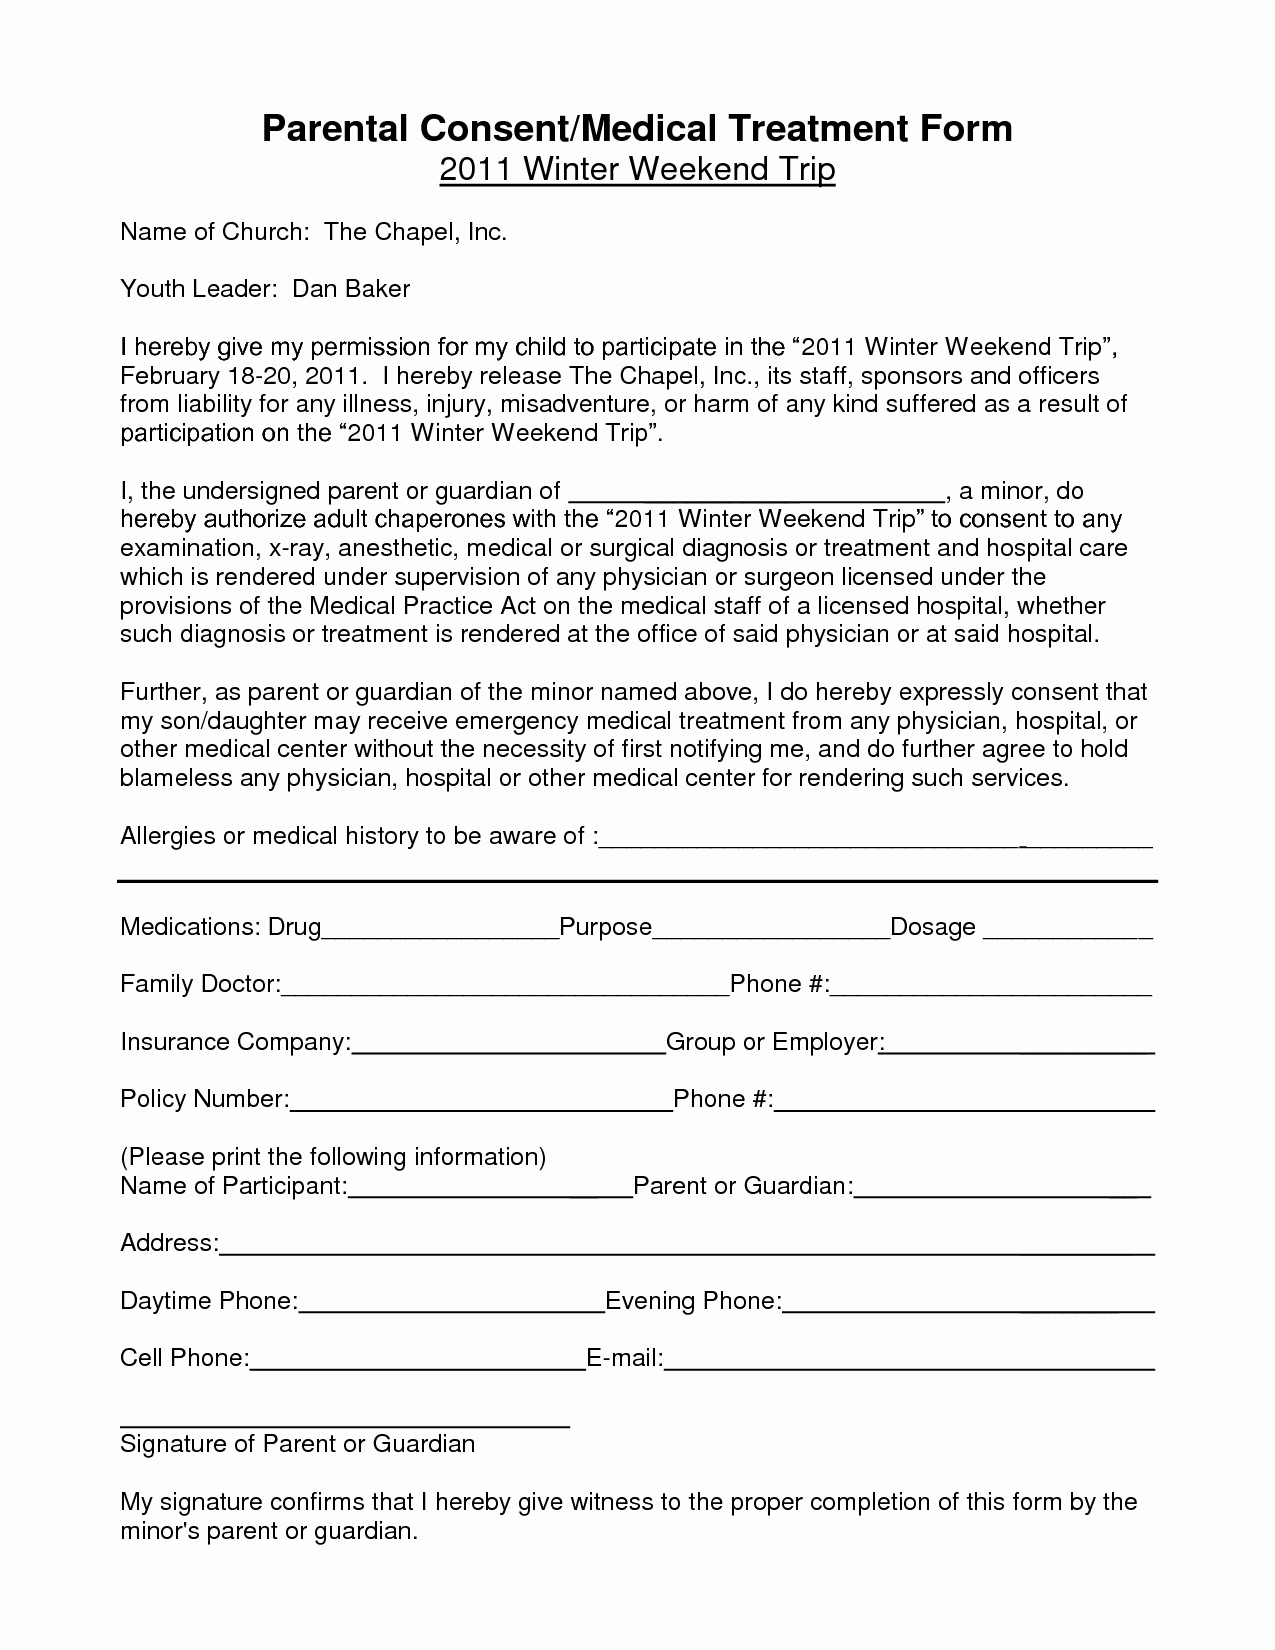 Parent Release form Template Unique Medical Treatment Consent Free Printable Documents